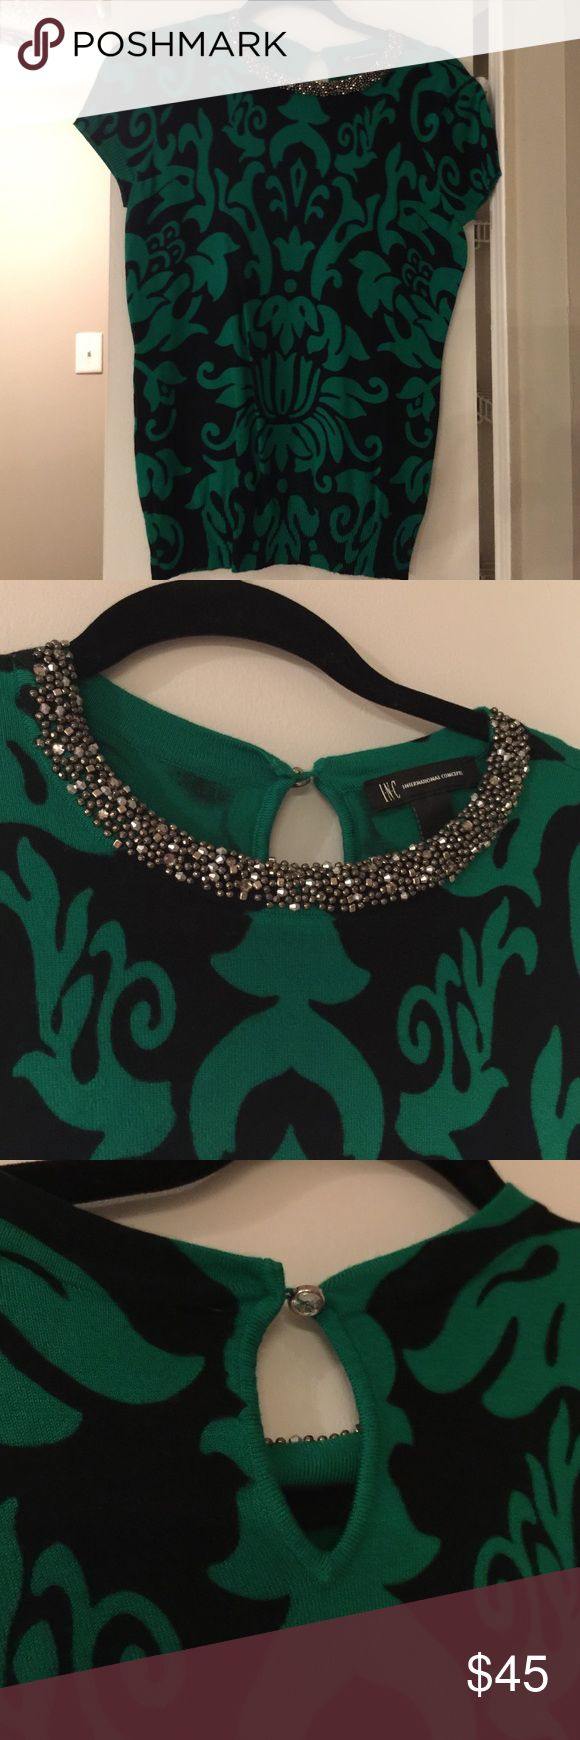 Macy INC Brand Beaded neck top Macy INC Brand Beaded neck top. Cute details. Rayon/nylon blend. Perfect with black pants! Like new INC International Concepts Tops Blouses